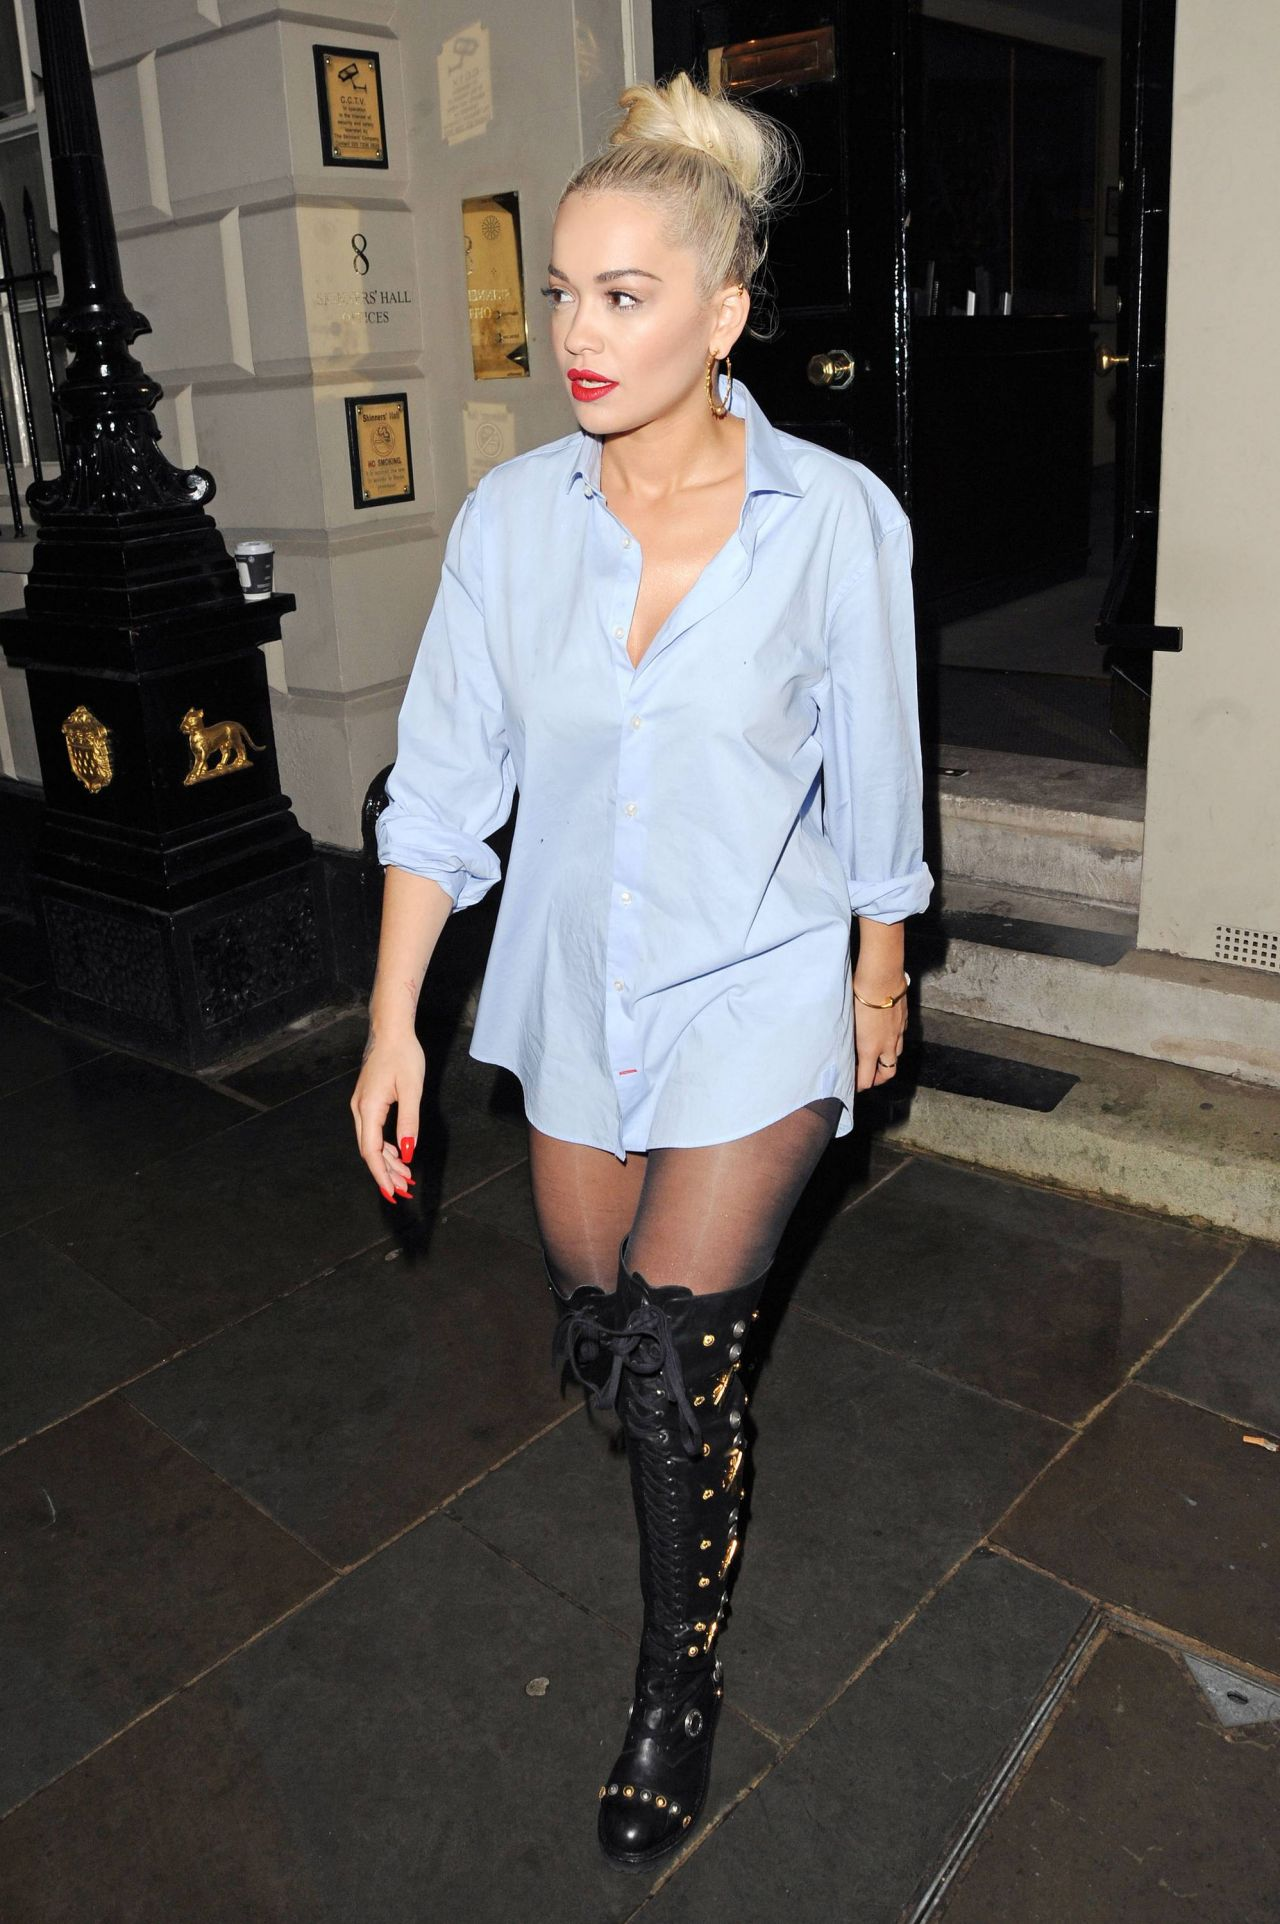 rita-ora-casual-style-out-in-london-july-2015_5